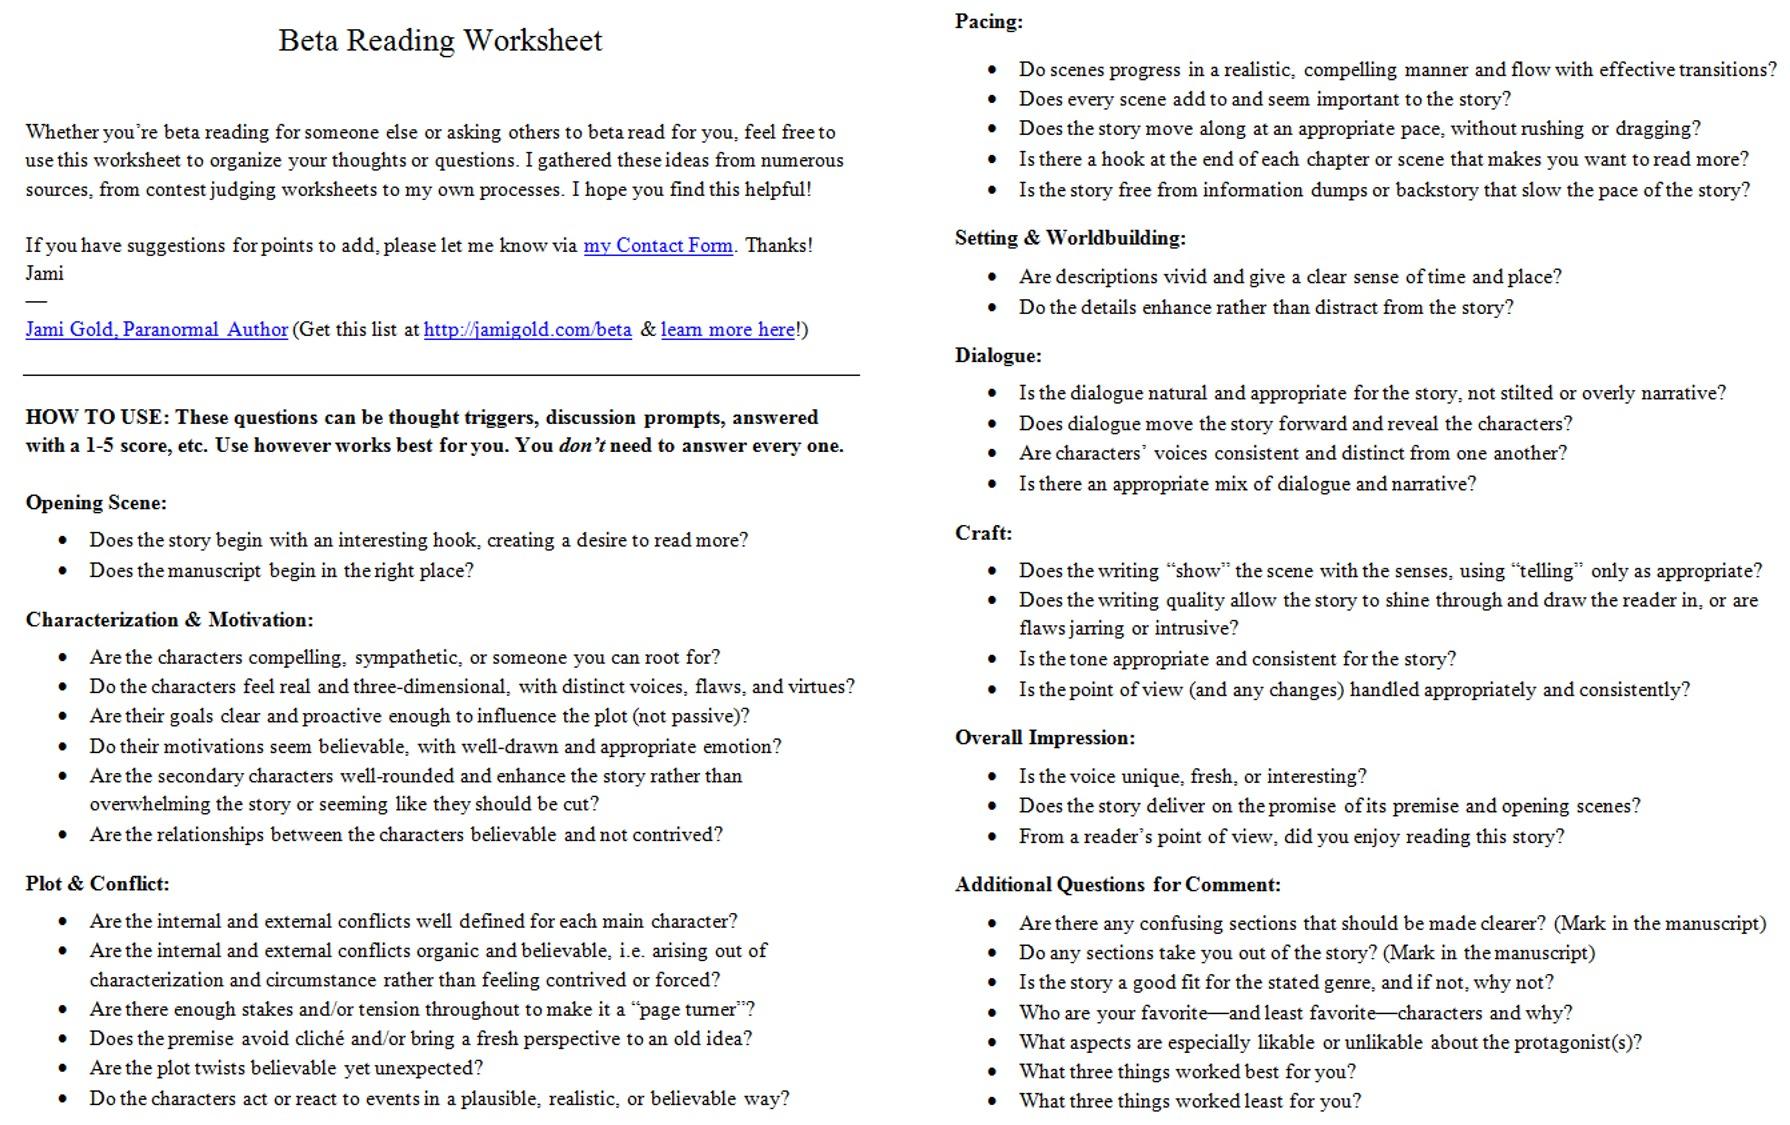 Proatmealus  Surprising Worksheets For Writers  Jami Gold Paranormal Author With Gorgeous Screen Shot Of The Twopage Beta Reading Worksheet With Alluring Middle School English Worksheets Also Renewable Vs Nonrenewable Resources Worksheet In Addition Force And Motion Worksheets Th Grade And The Sight Word Worksheet As Well As Bodmas Worksheets Additionally Easy Long Division Worksheets From Jamigoldcom With Proatmealus  Gorgeous Worksheets For Writers  Jami Gold Paranormal Author With Alluring Screen Shot Of The Twopage Beta Reading Worksheet And Surprising Middle School English Worksheets Also Renewable Vs Nonrenewable Resources Worksheet In Addition Force And Motion Worksheets Th Grade From Jamigoldcom